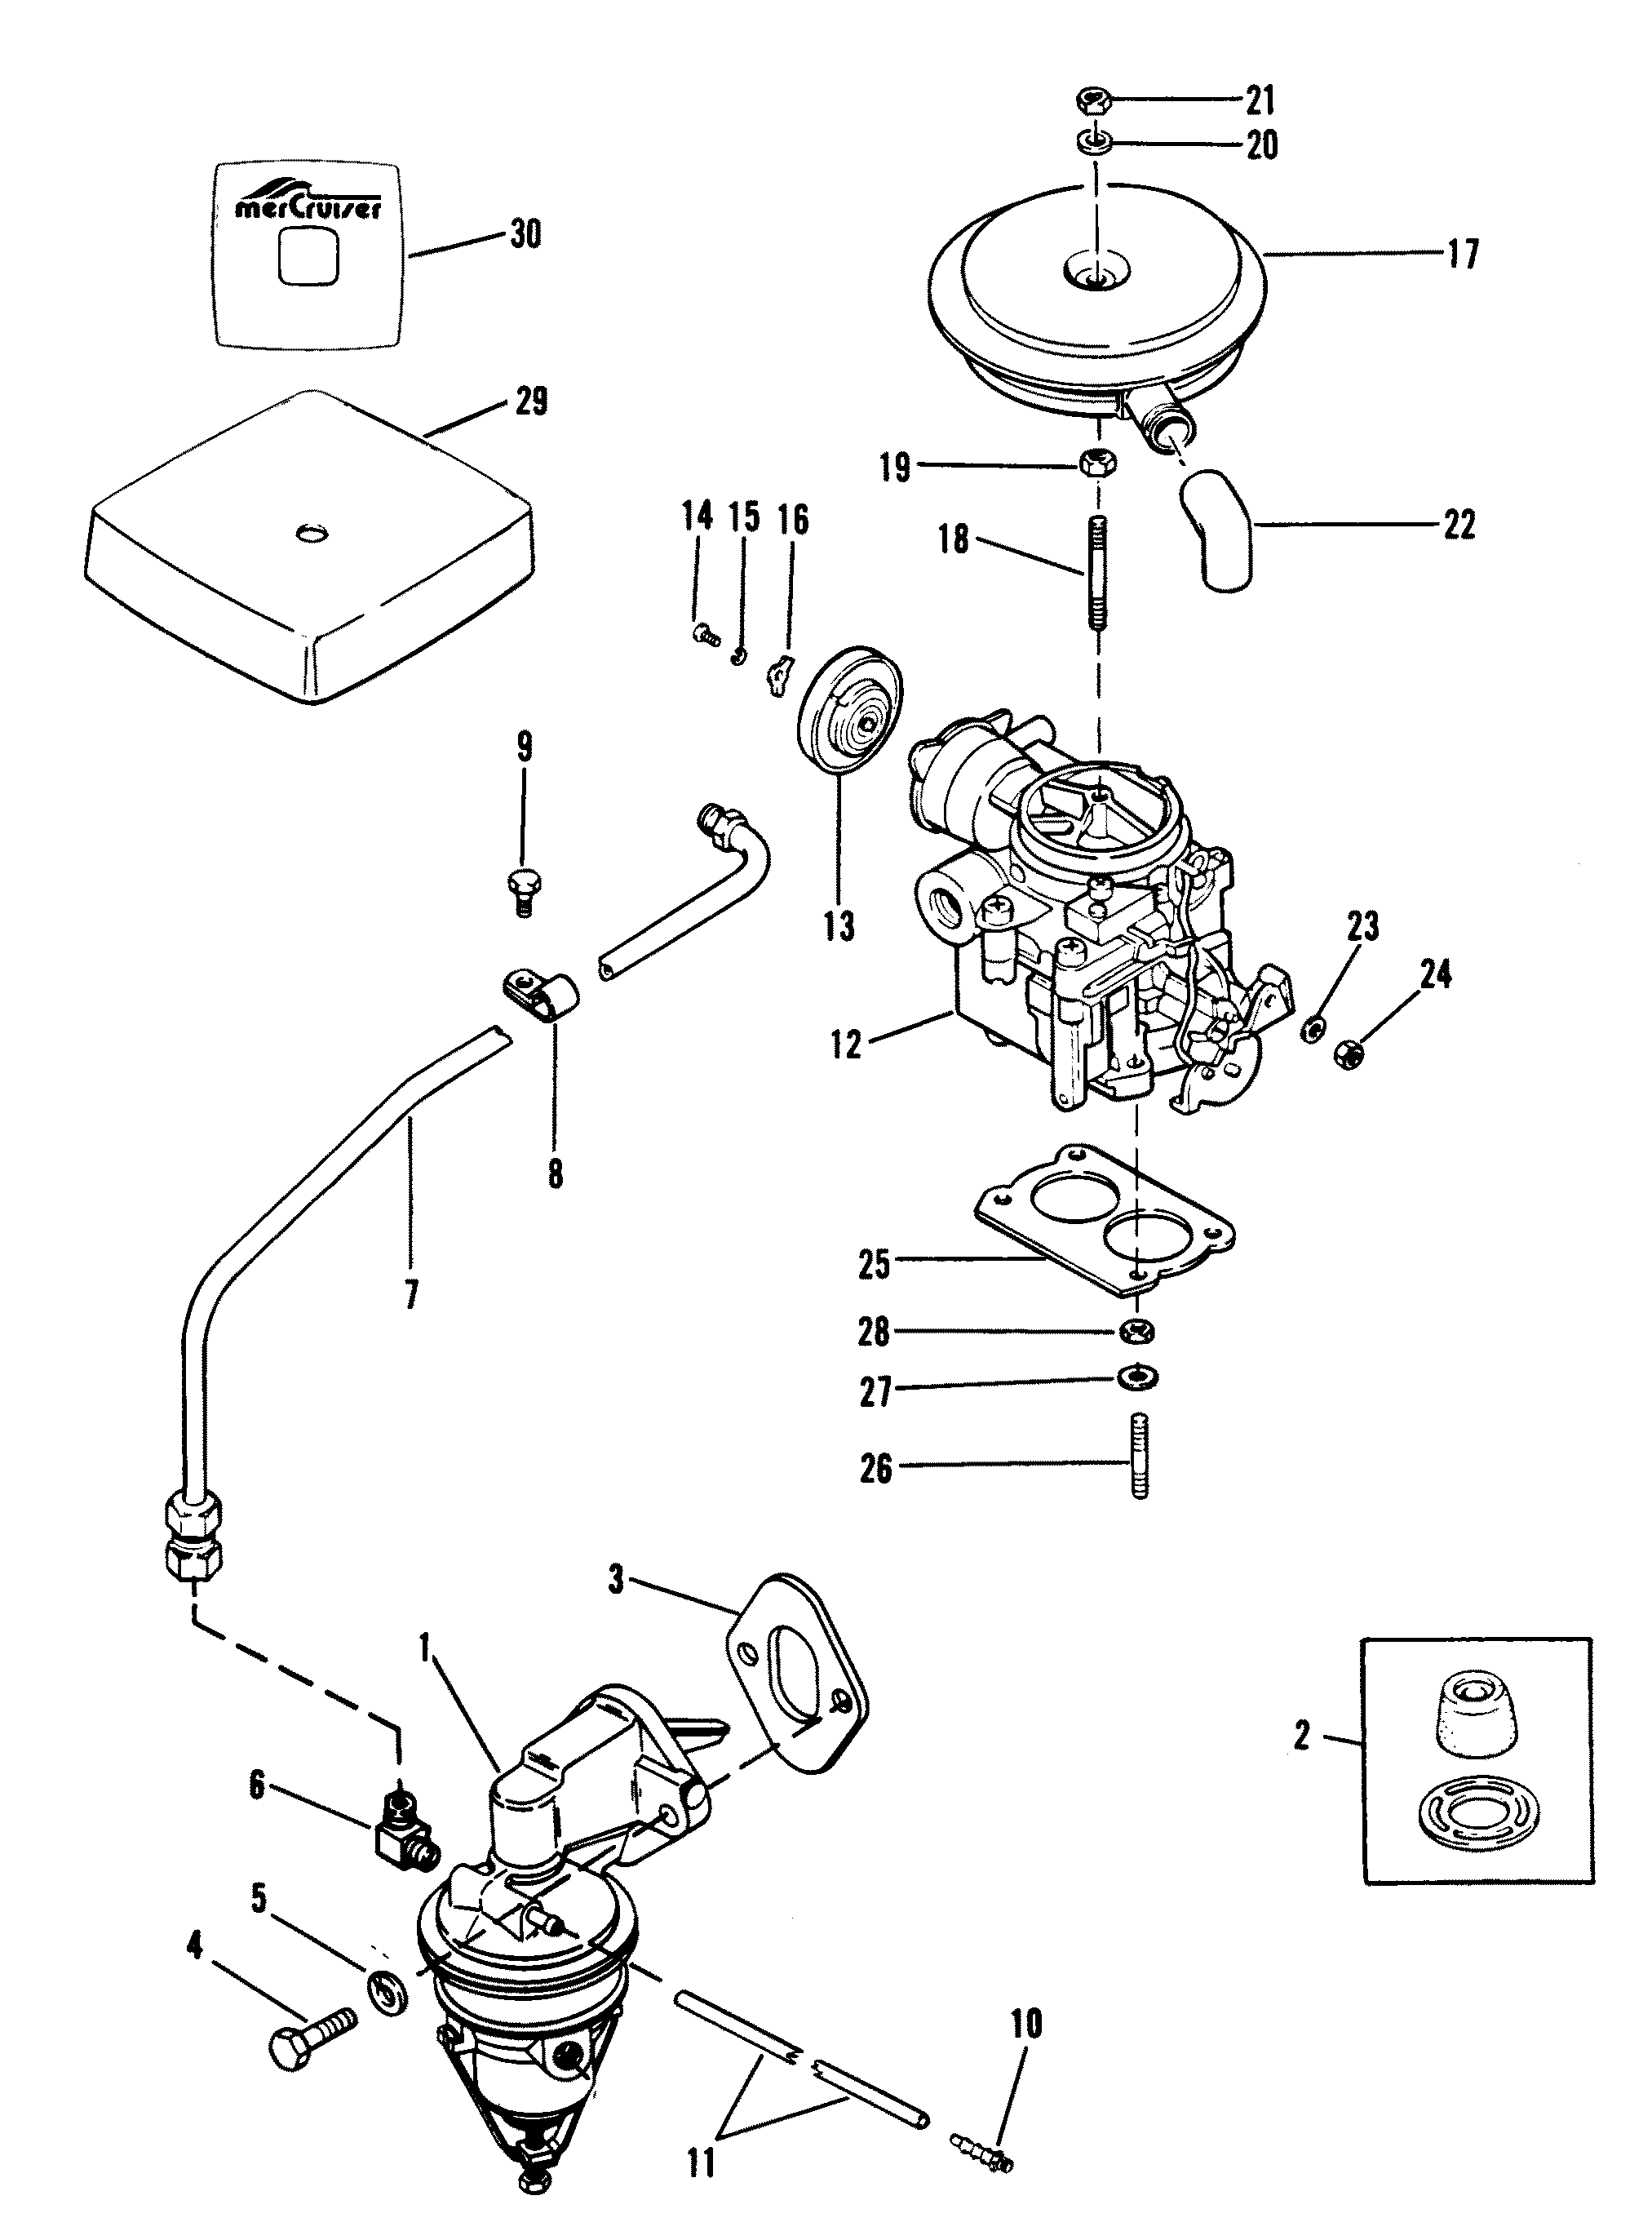 1977 Mercruiser 120 Hp Wiring Diagram Electrical Diagrams Engine Private Sharing About Marine Cooling System